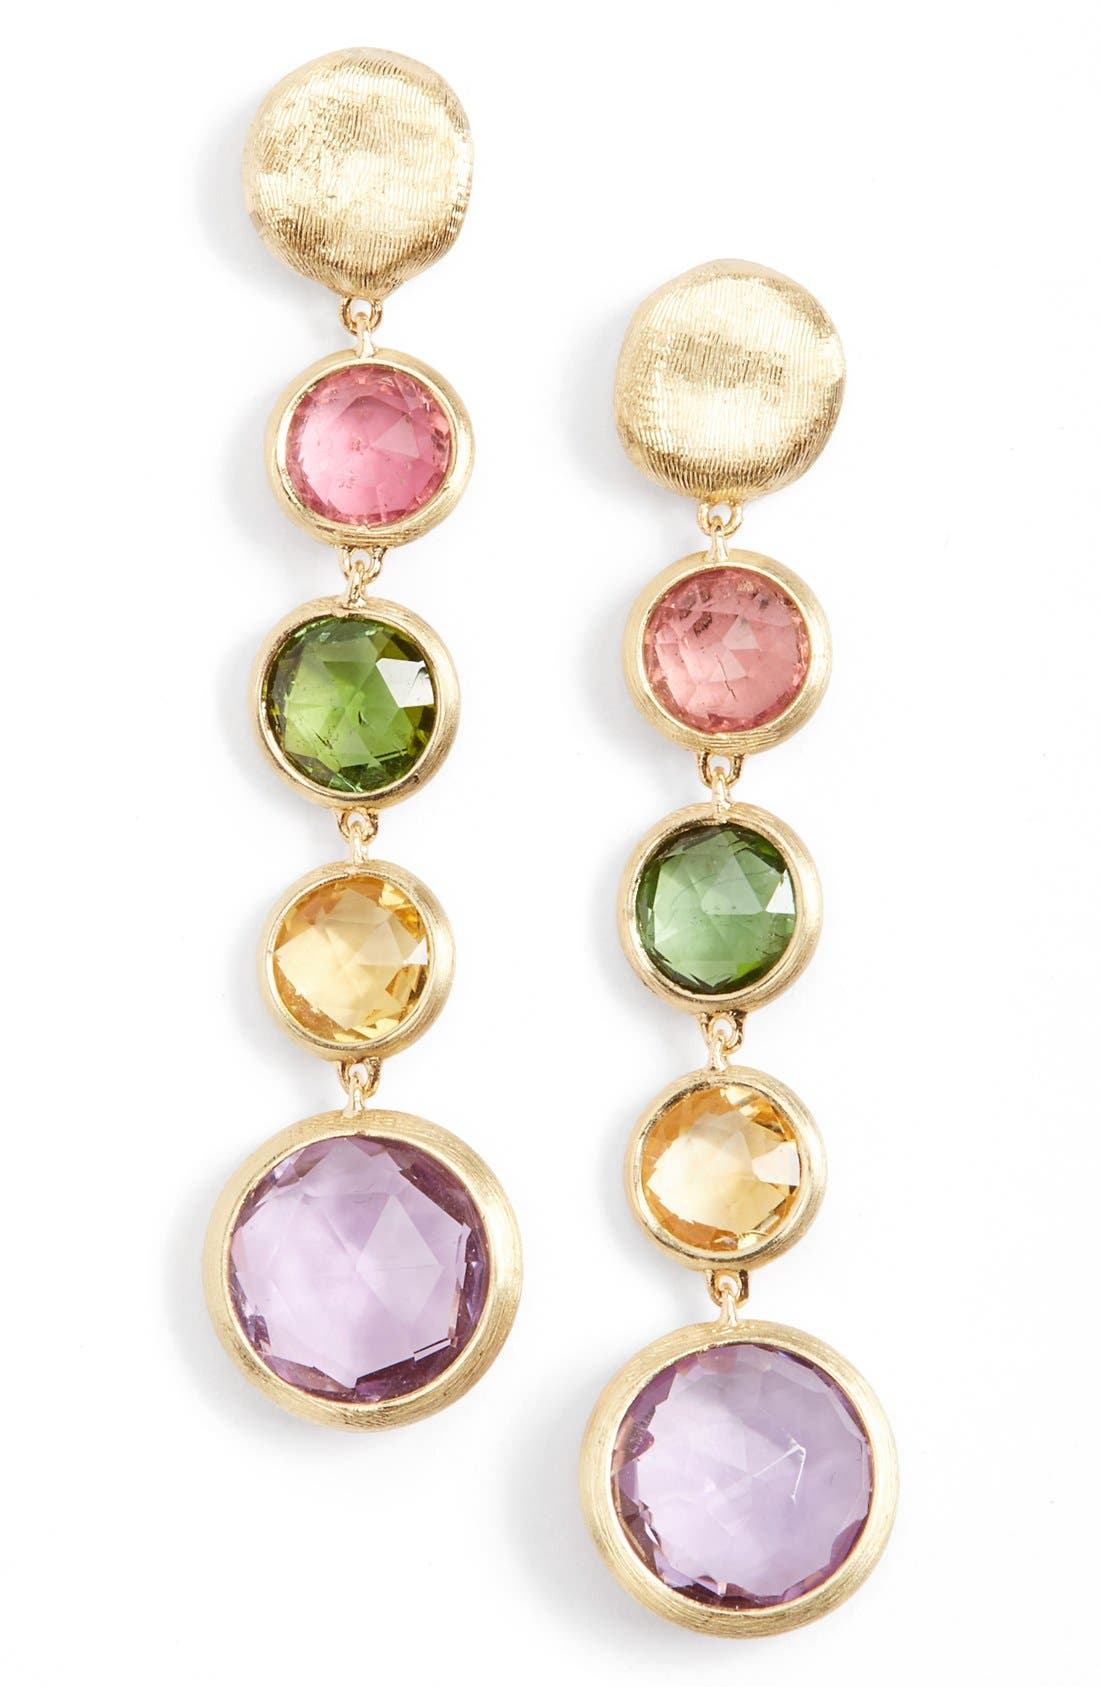 Alternate Image 1 Selected - Marco Bicego 'Jaipur' Semiprecious Stone Linear Earrings